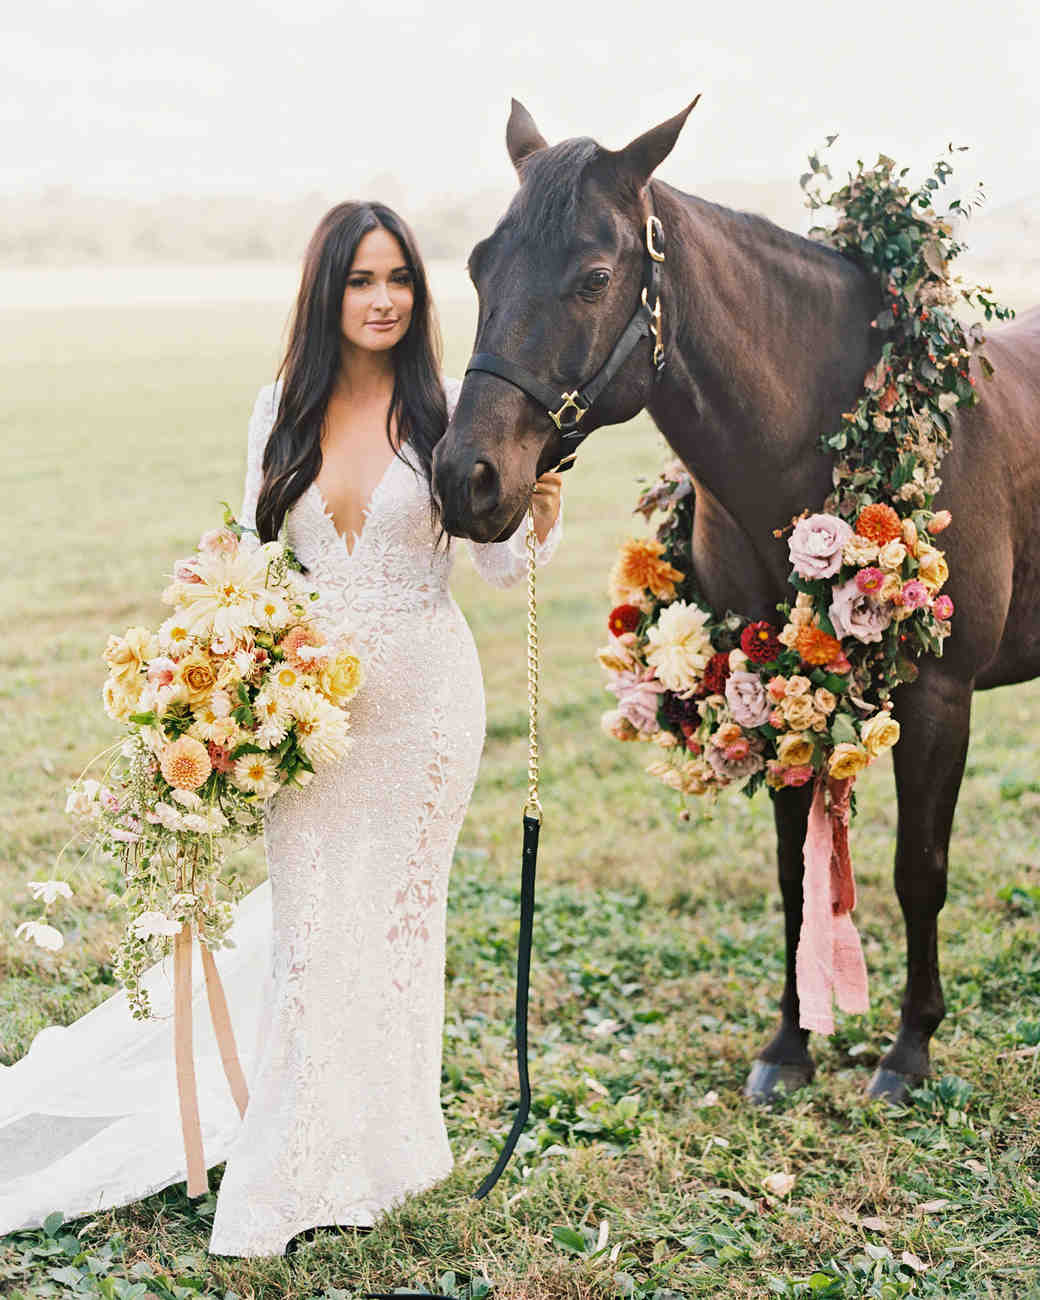 Space Cowboy Kacey Musgraves: Most Talked About Wedding Dresses